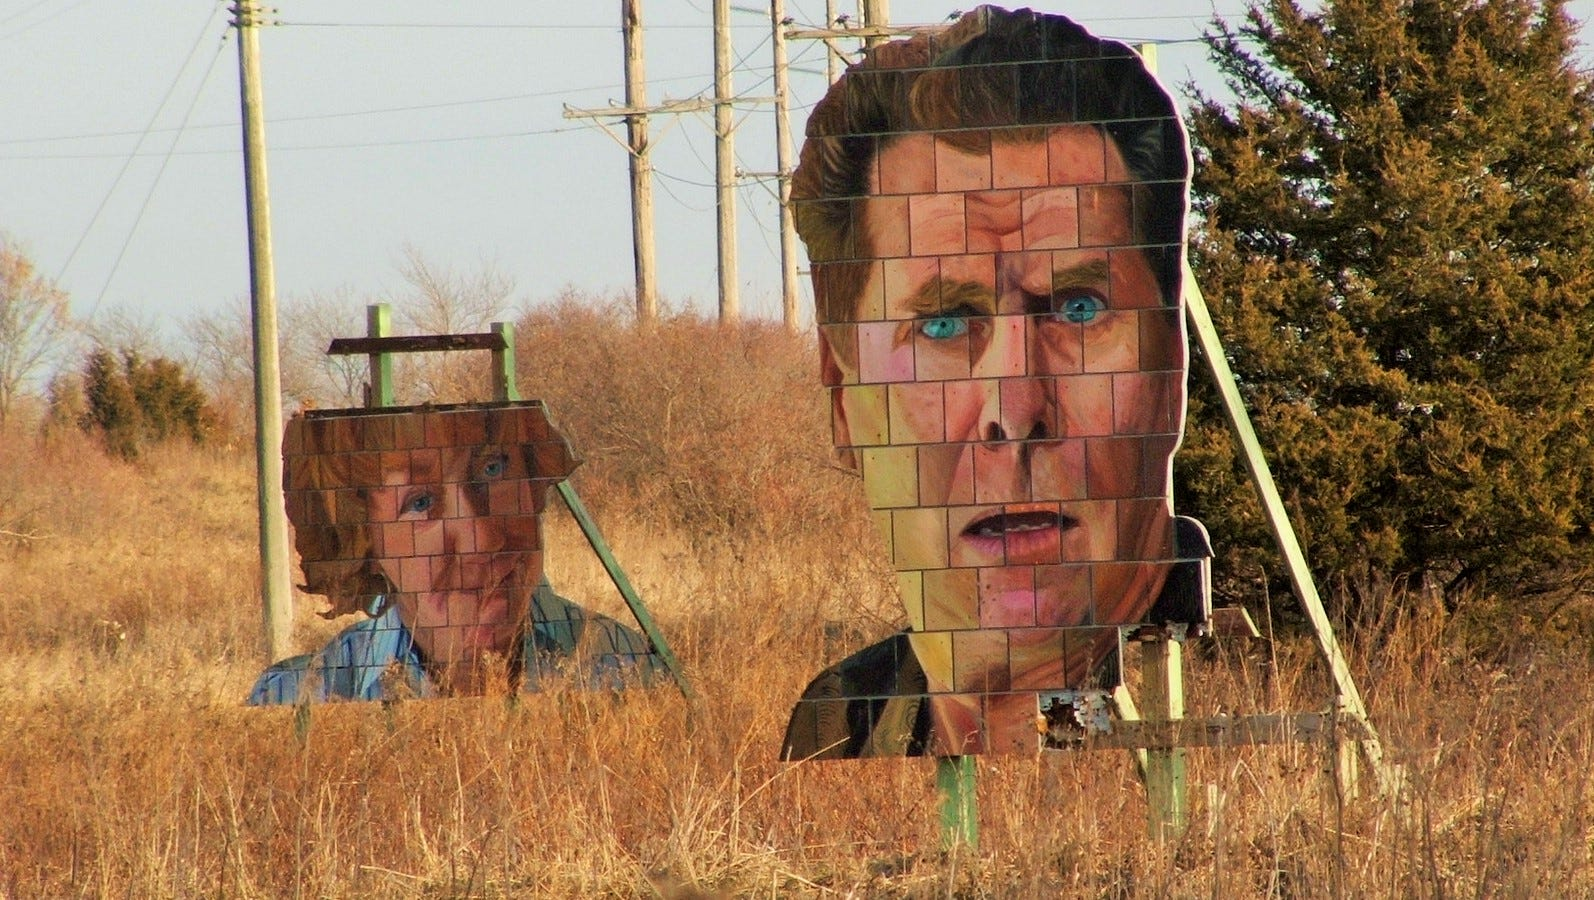 Big faces in Iowa City pasture aren't angry, just expressive